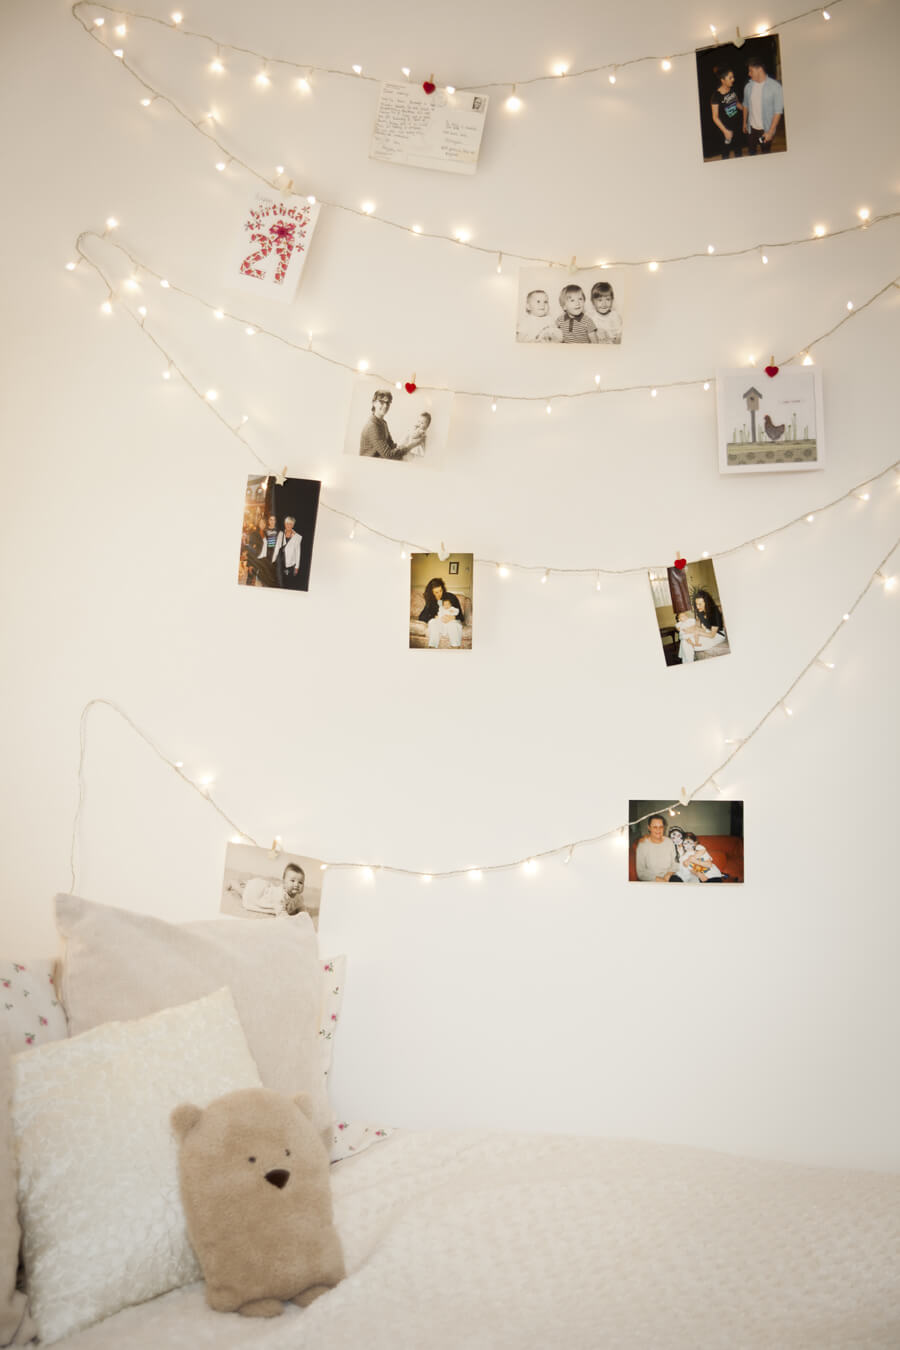 5 id es d co r aliser avec une guirlande lumineuse frenchy fancy - Decoration avec photo ...